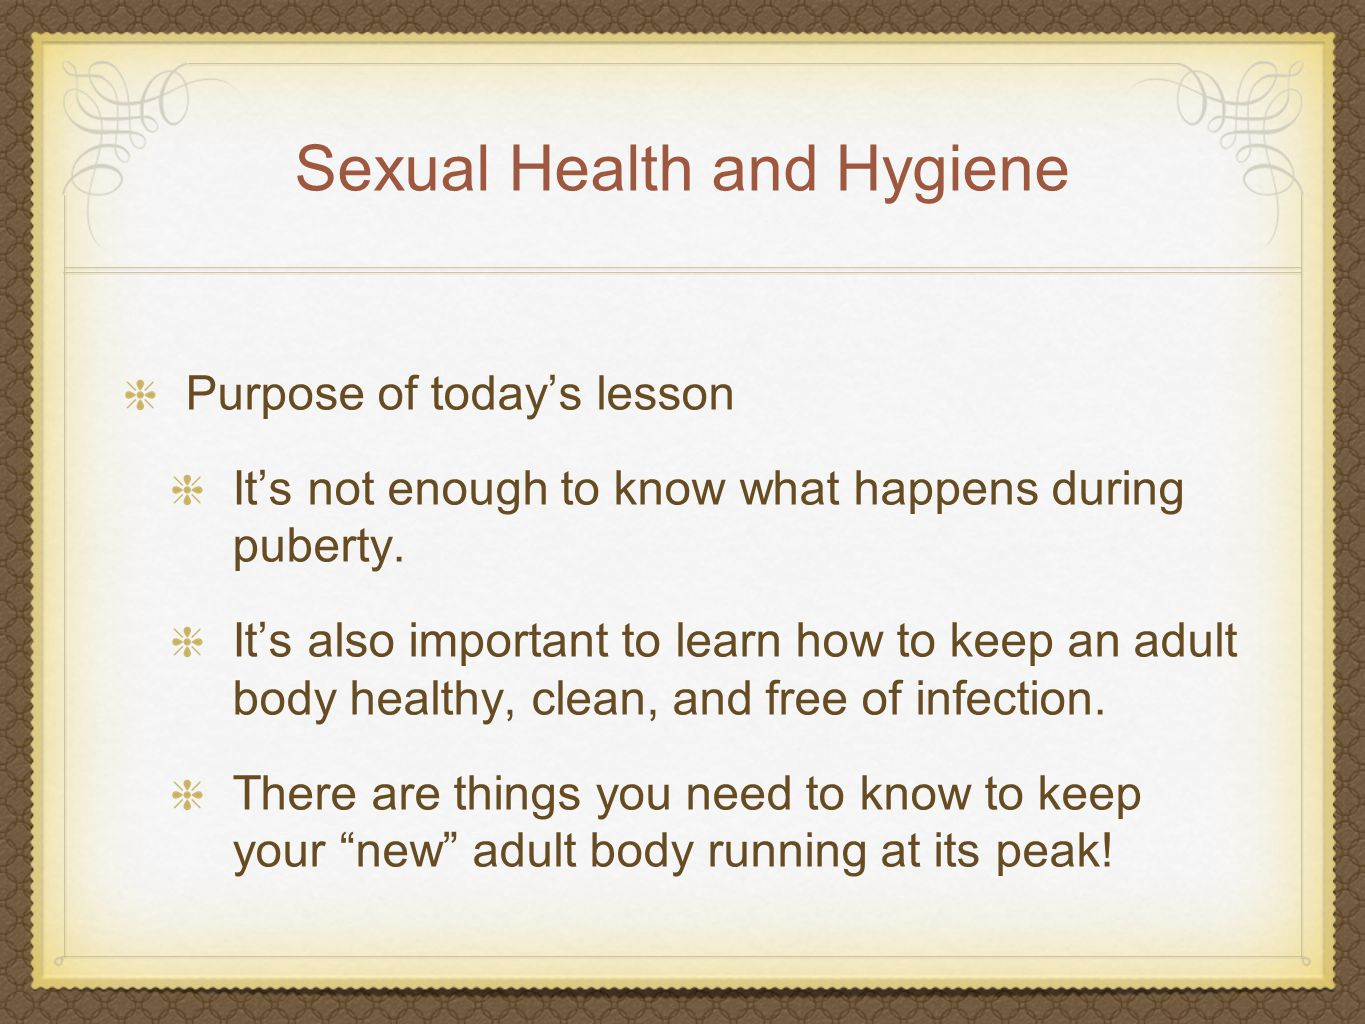 Sexual Health and Hygiene